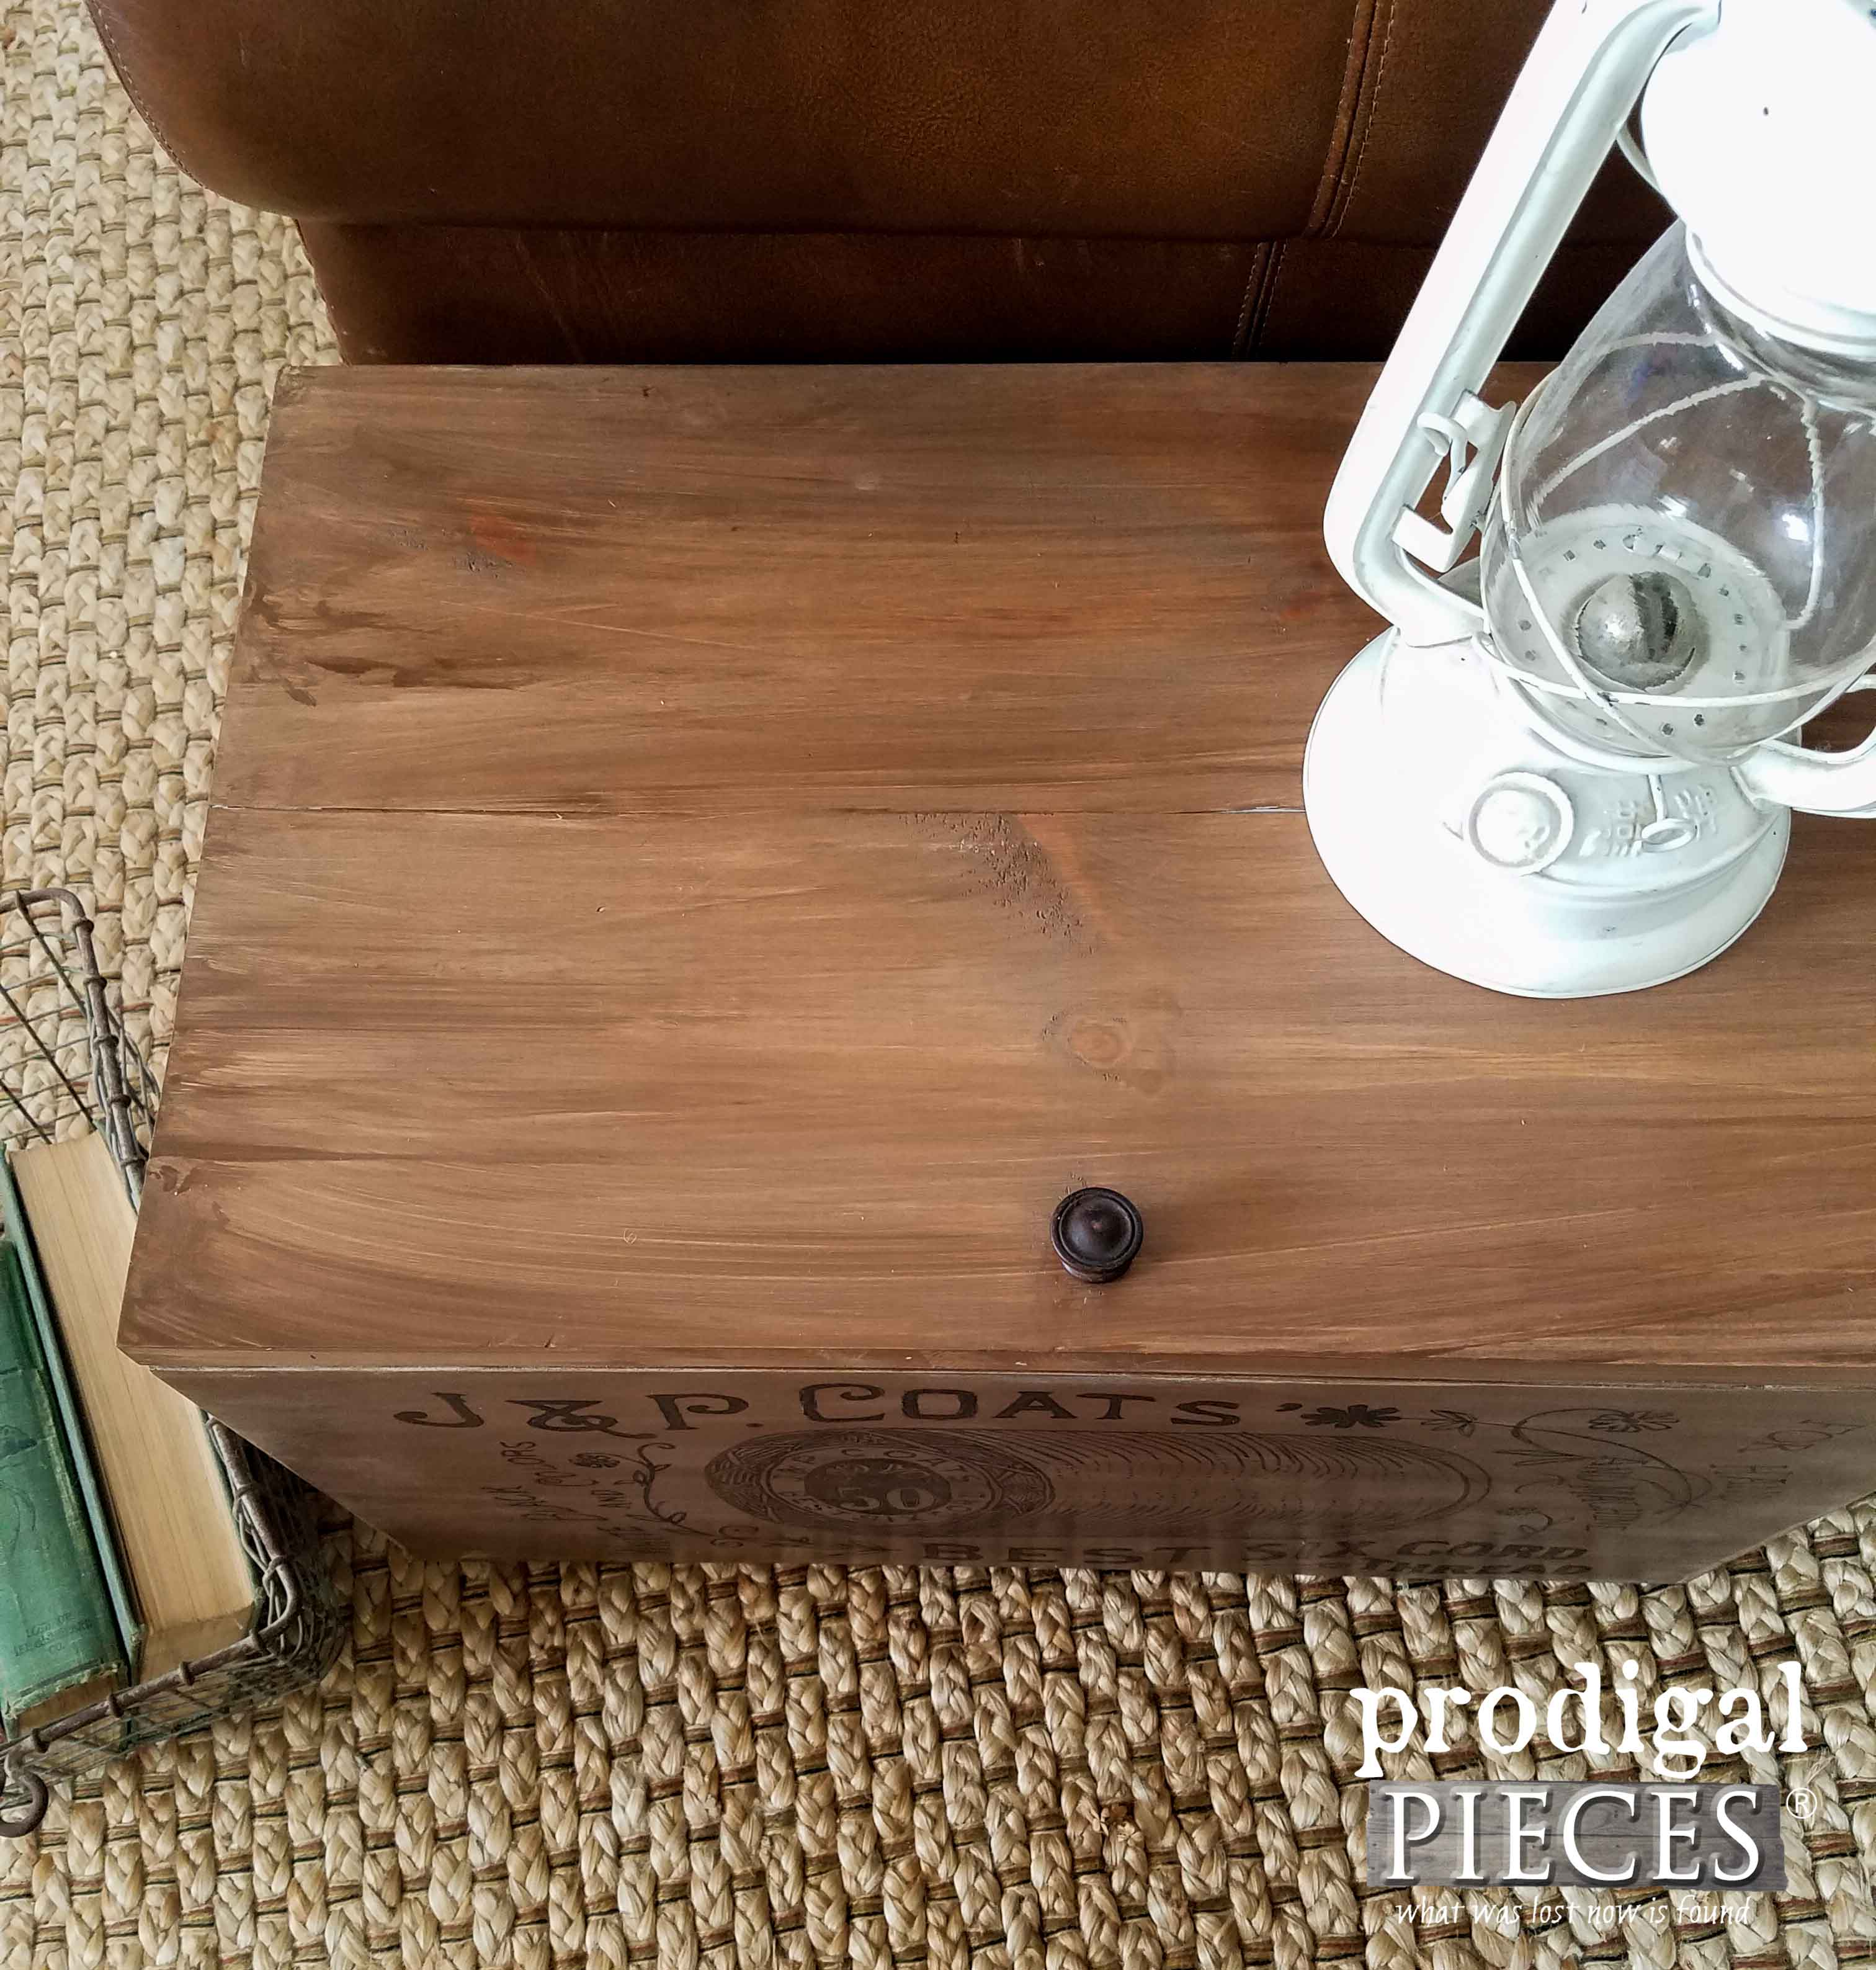 Upcycled Crate Made from Cabinet Doors by Prodigal Pieces | prodigalpieces.com